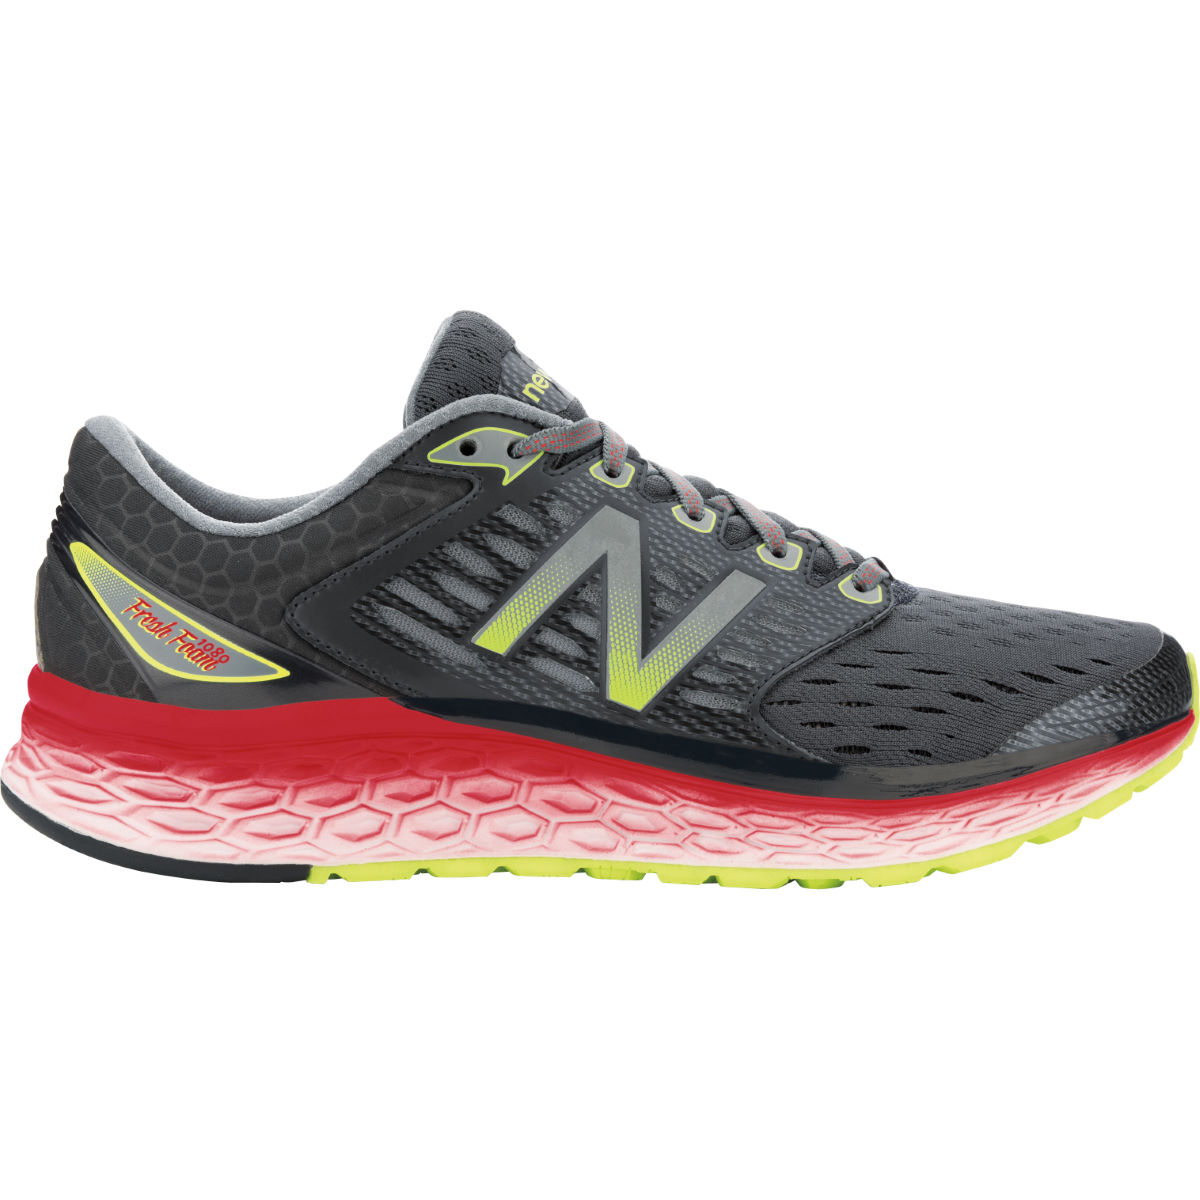 Chaussures New Balance Fresh Foam 1080v6 (AH16) - 7 UK Noir/Rouge Chaussures de running amorties